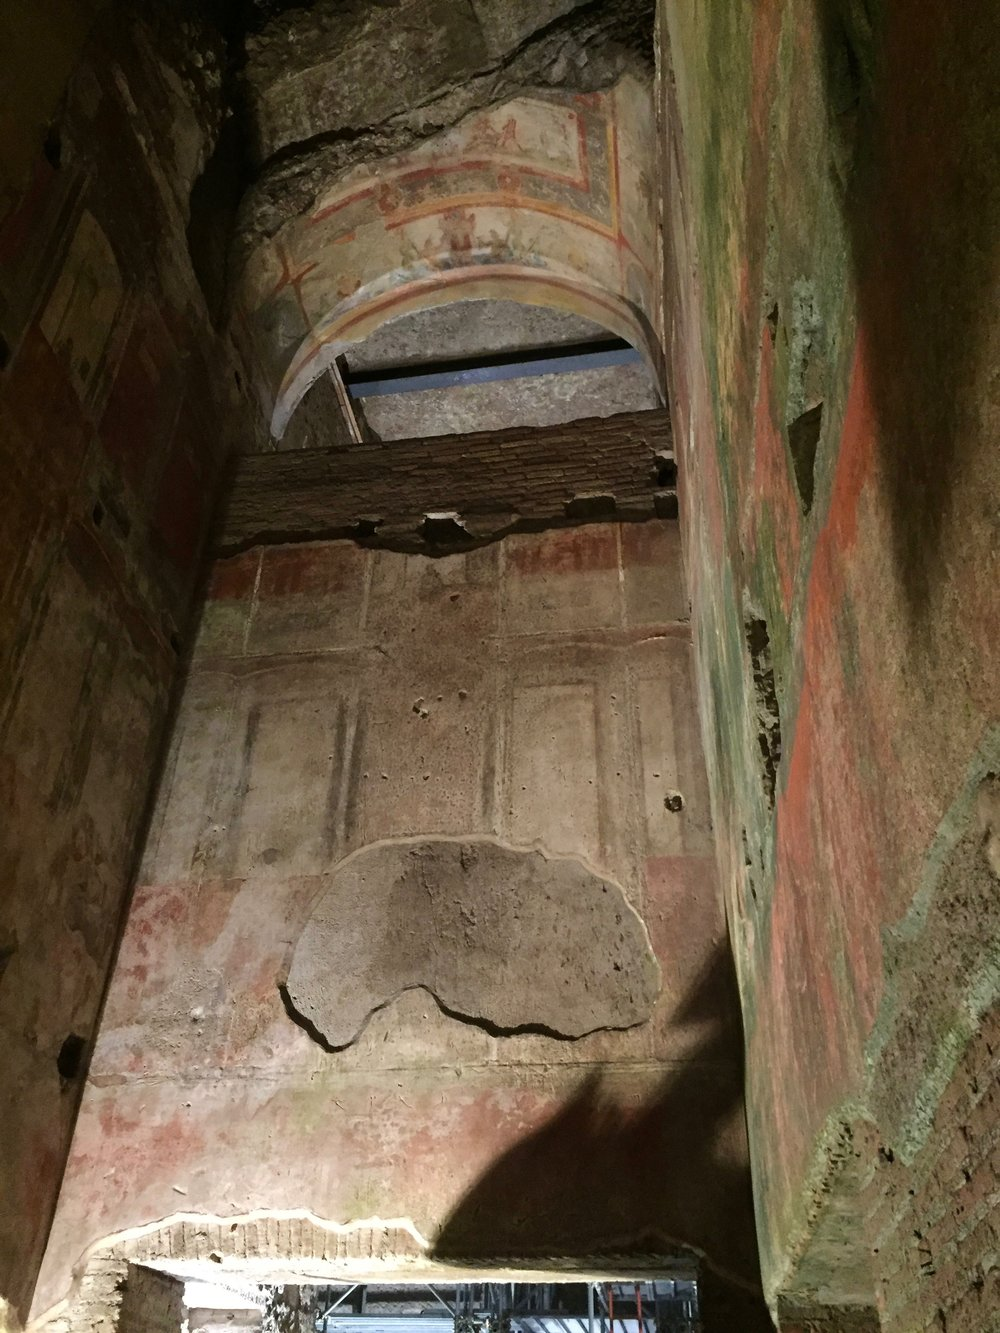 Ceilings more than 30 ft high within Nero's palace